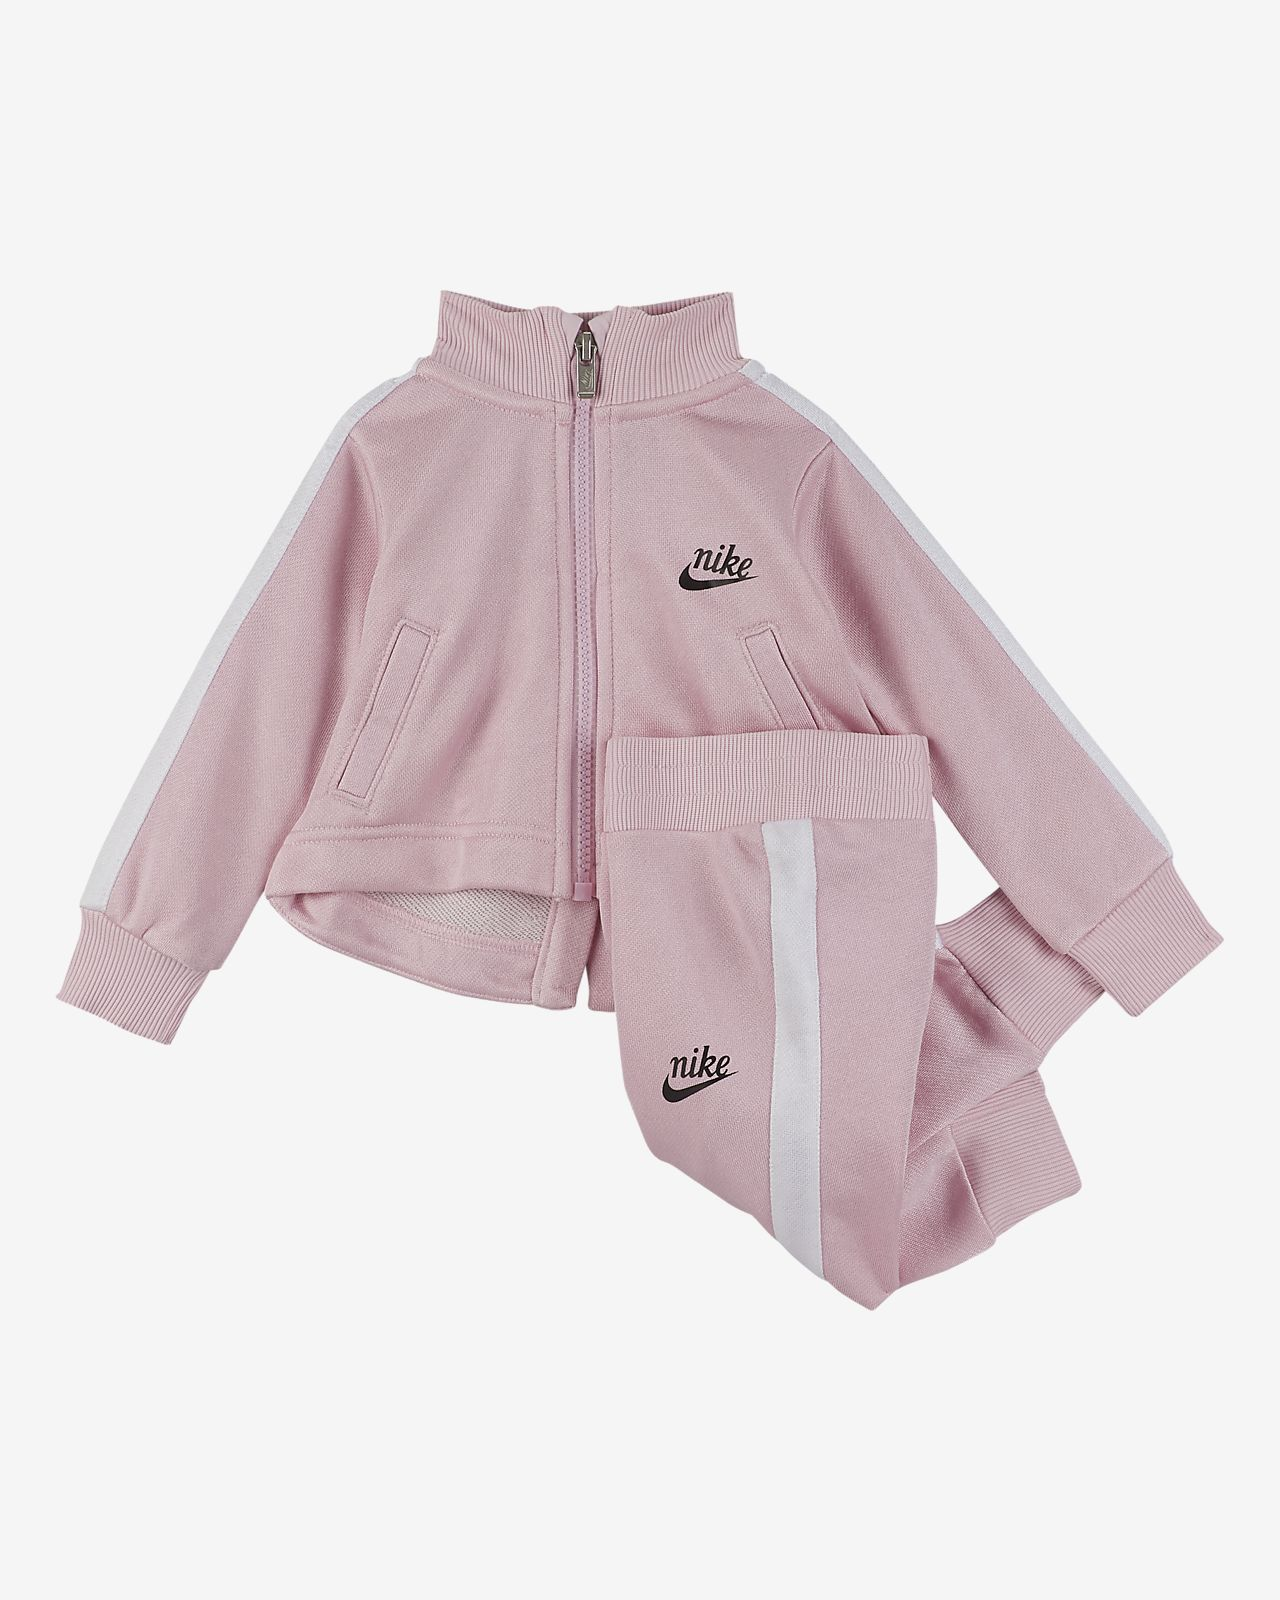 Nike Sportswear Infant 2-Piece Set